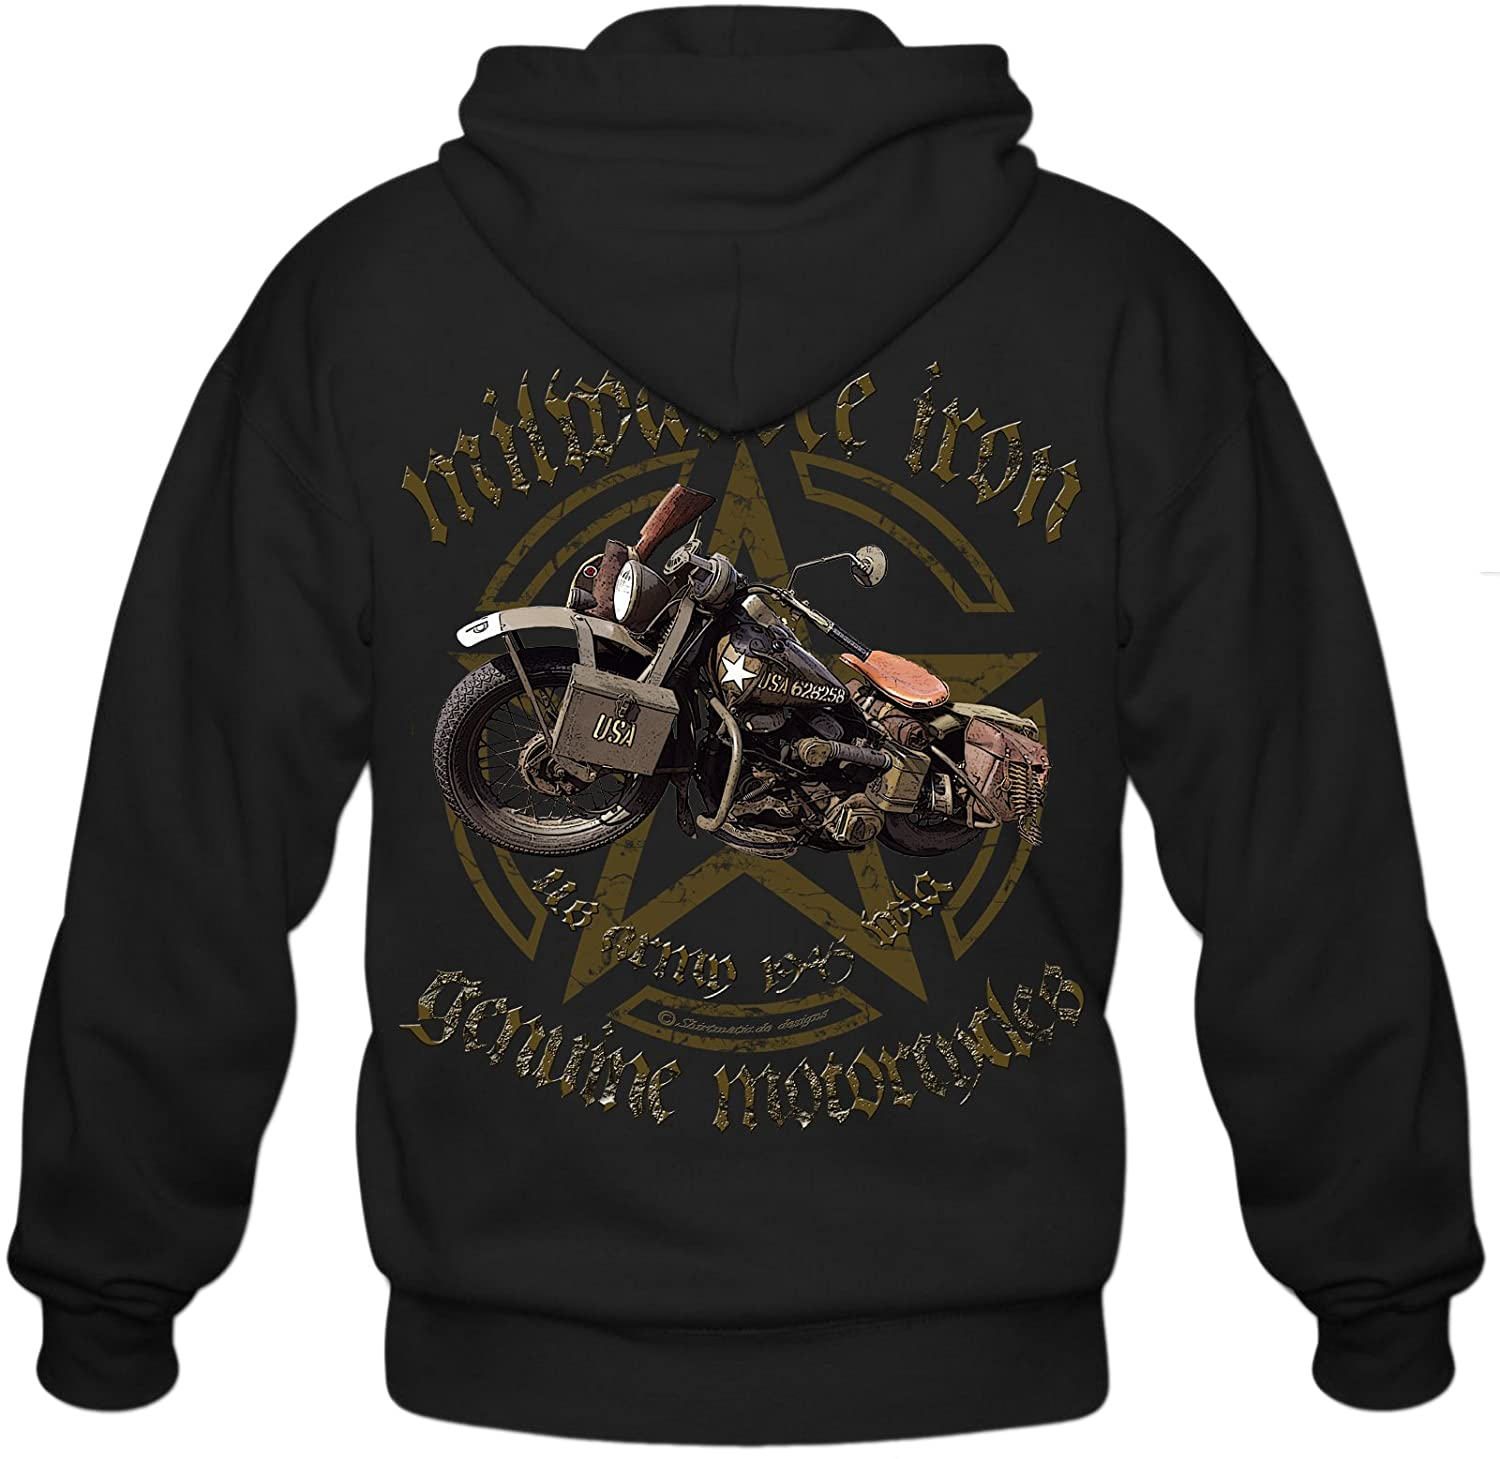 Shirtmatic Biker Sweatshirt Hoodie Milwaukee Iron Chopper Bobber V2 Motorrad